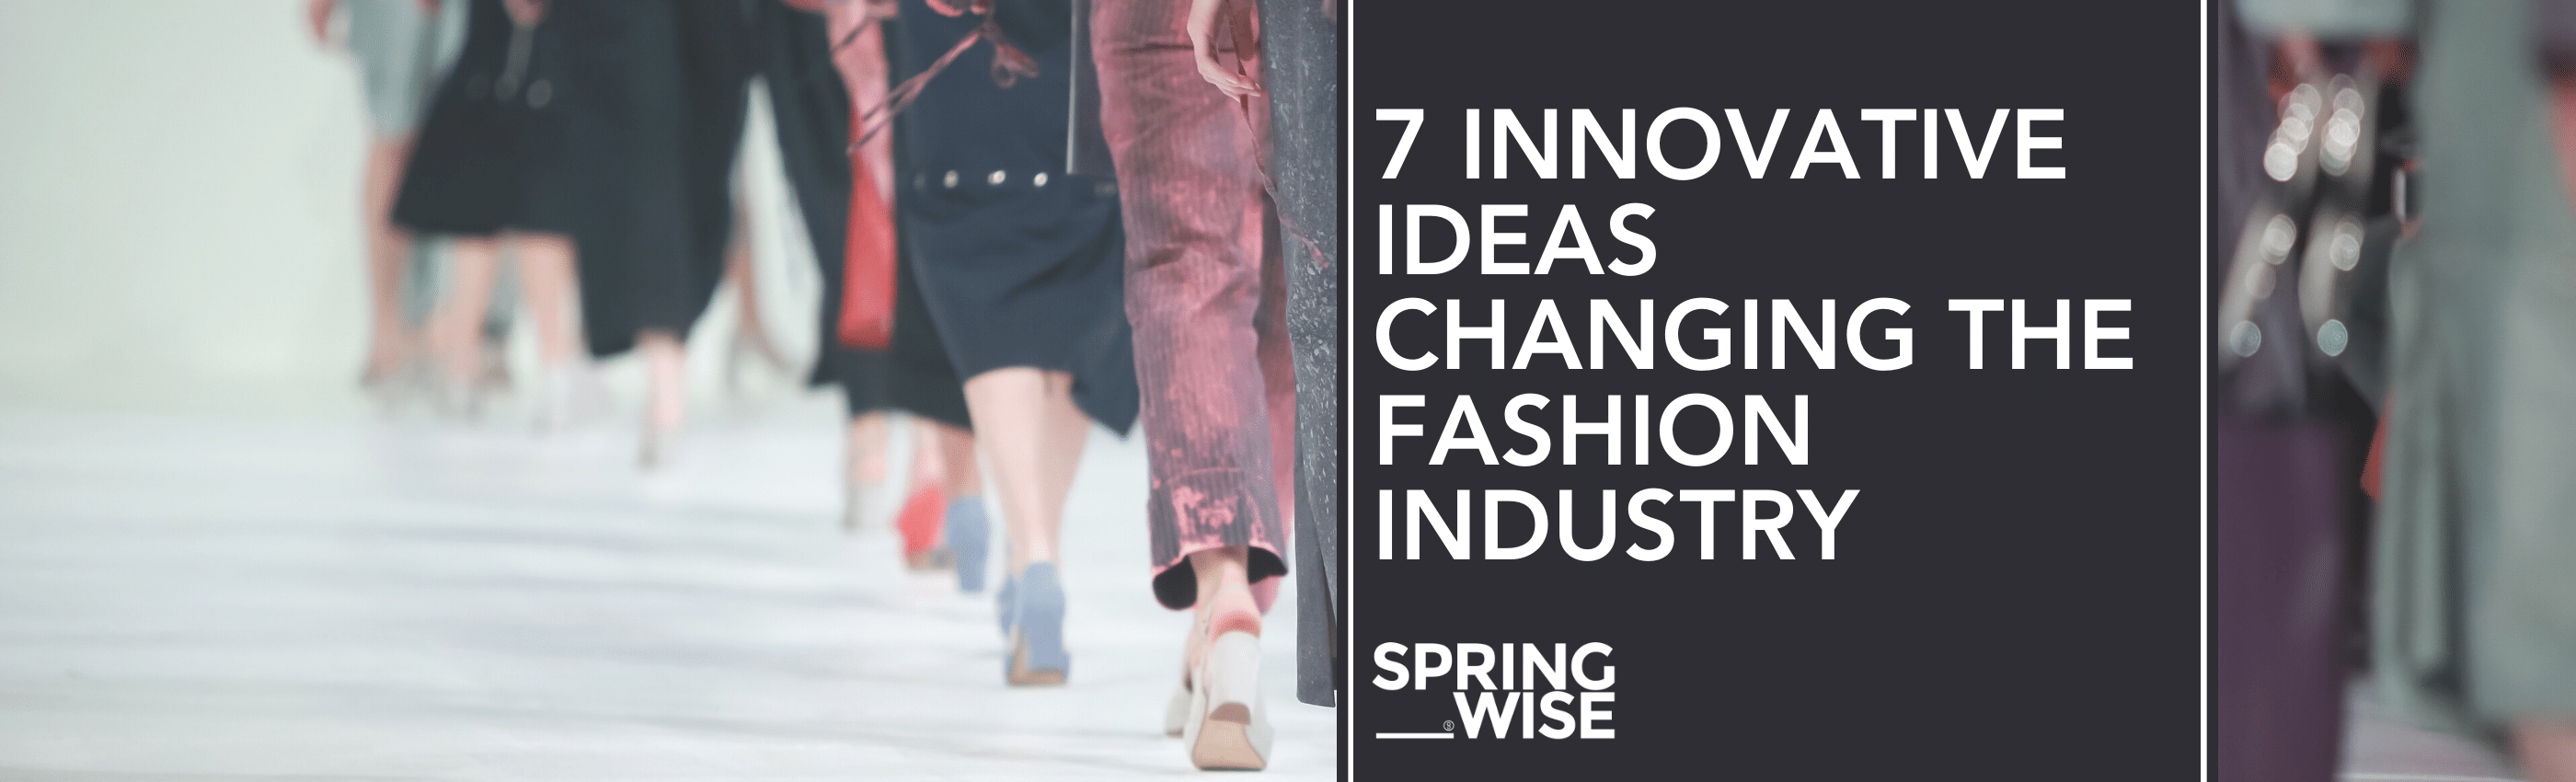 Fashion And Beauty Innovations Springwise